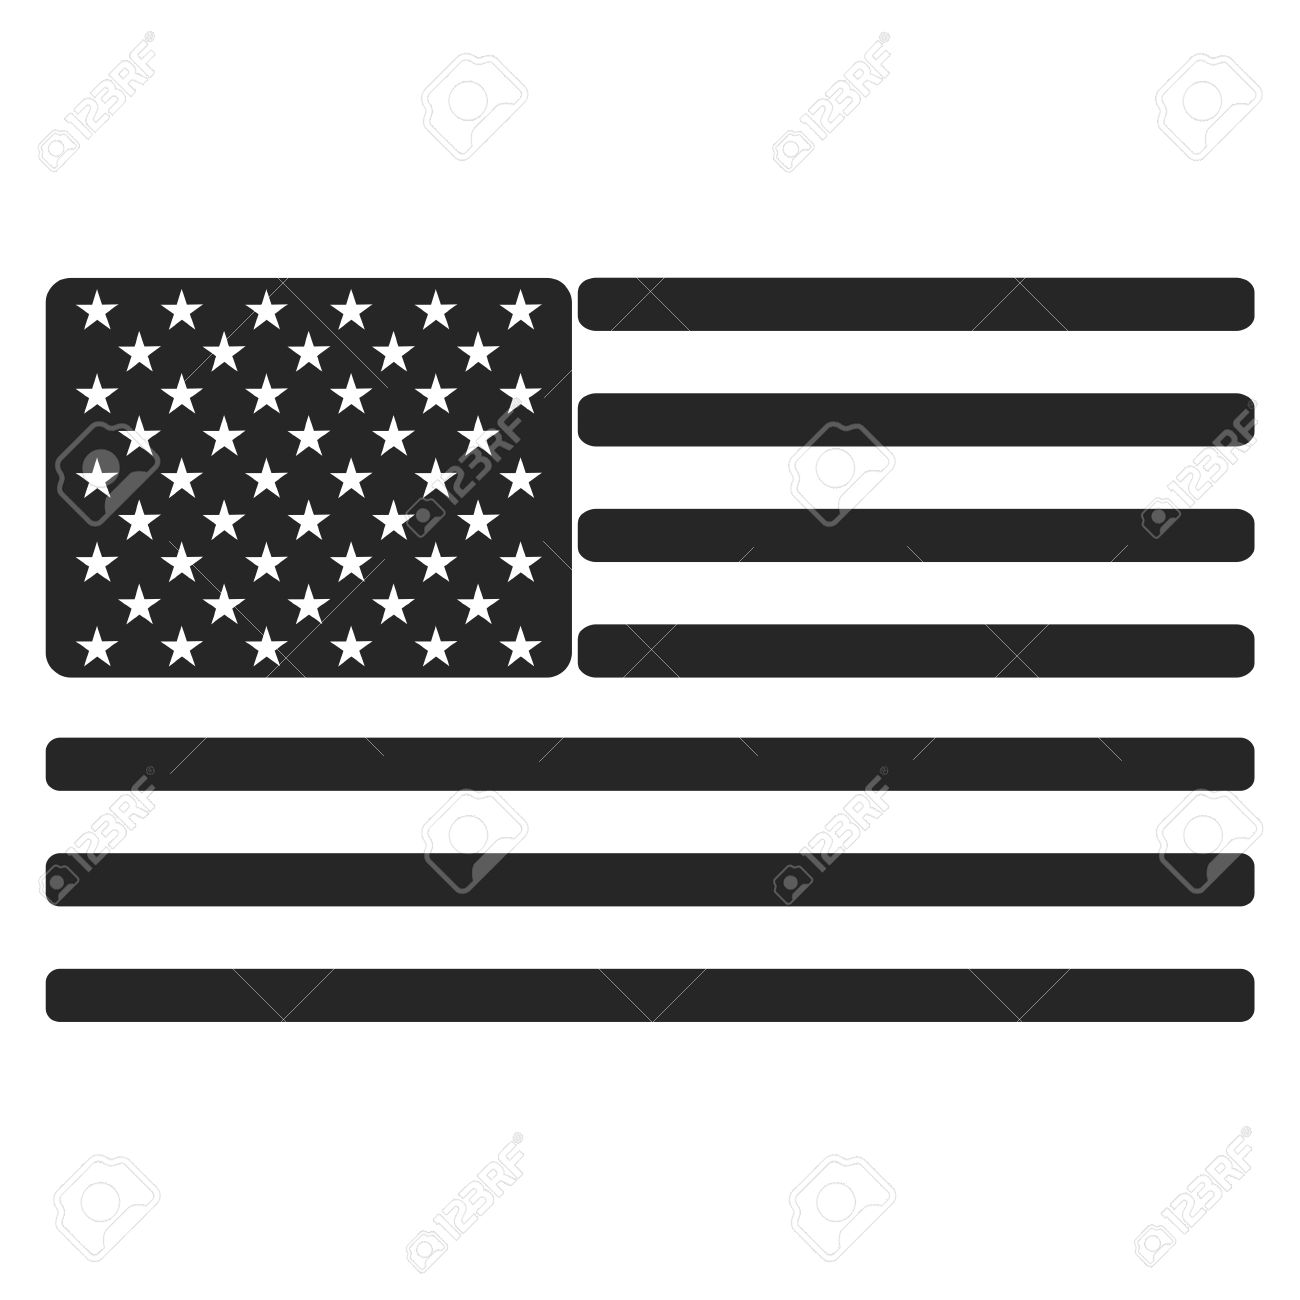 usa american flag icon black and white royalty free cliparts